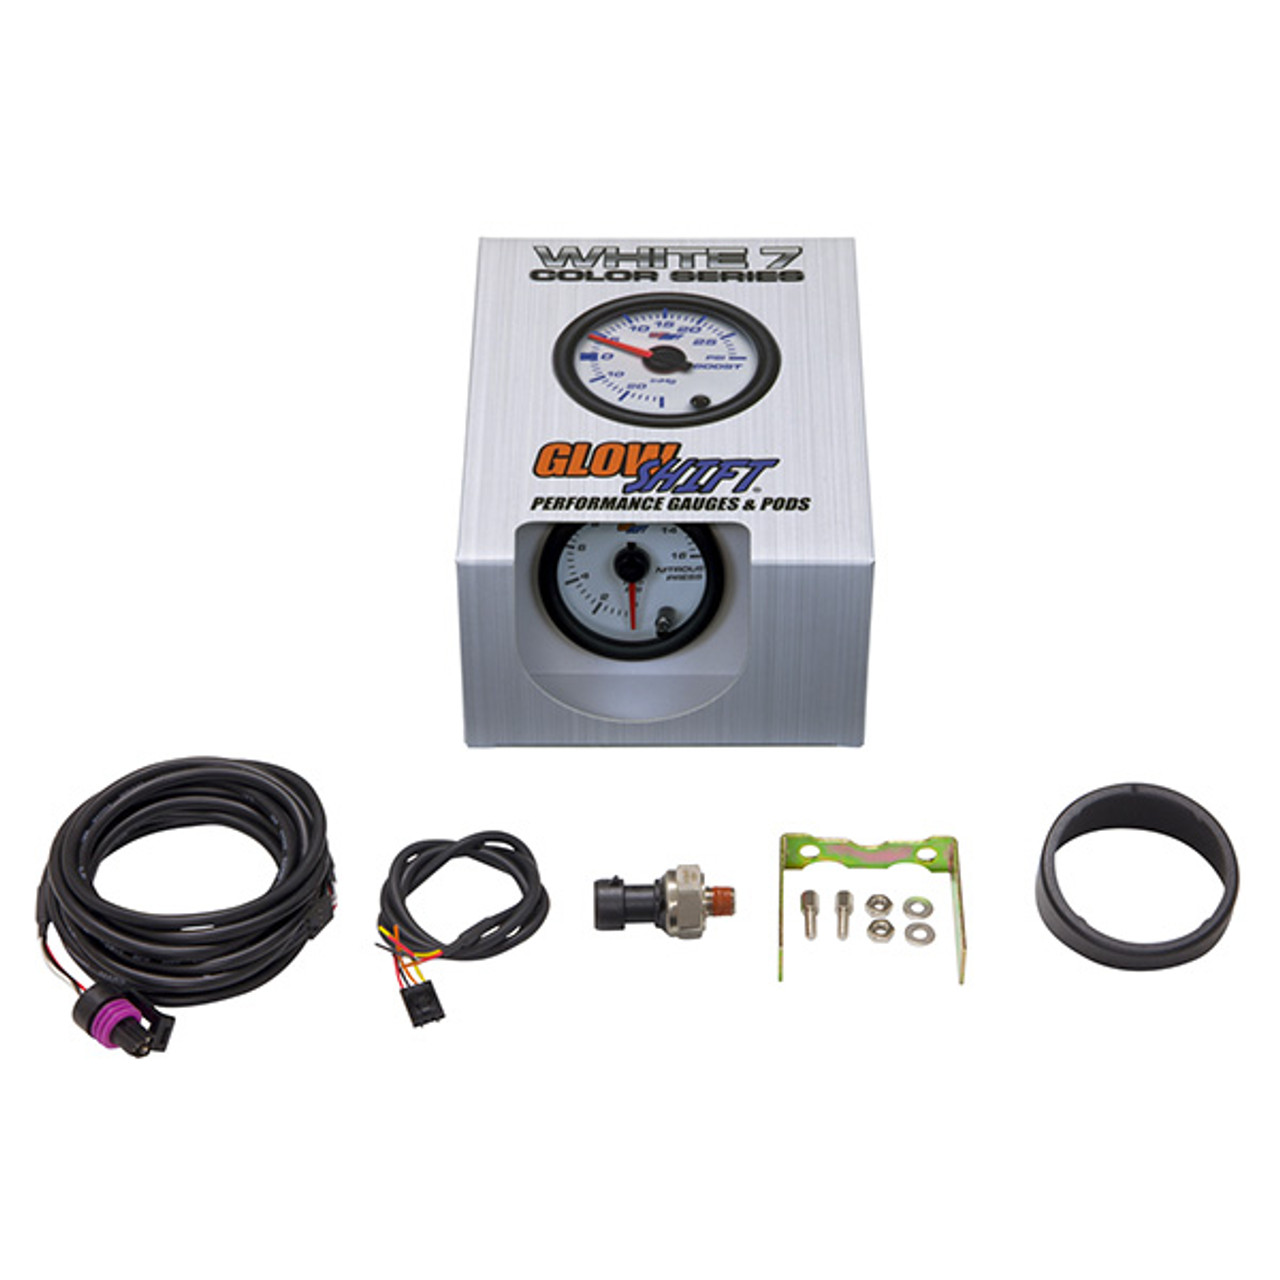 GlowShift 18ft Pressure Gauge Sensor Harness for 7 Color /& 10 Color Digital Series Oil Pressure Extended Length for Trucks Fuel Pressure /& Nitrous NOS Pressure Gauges